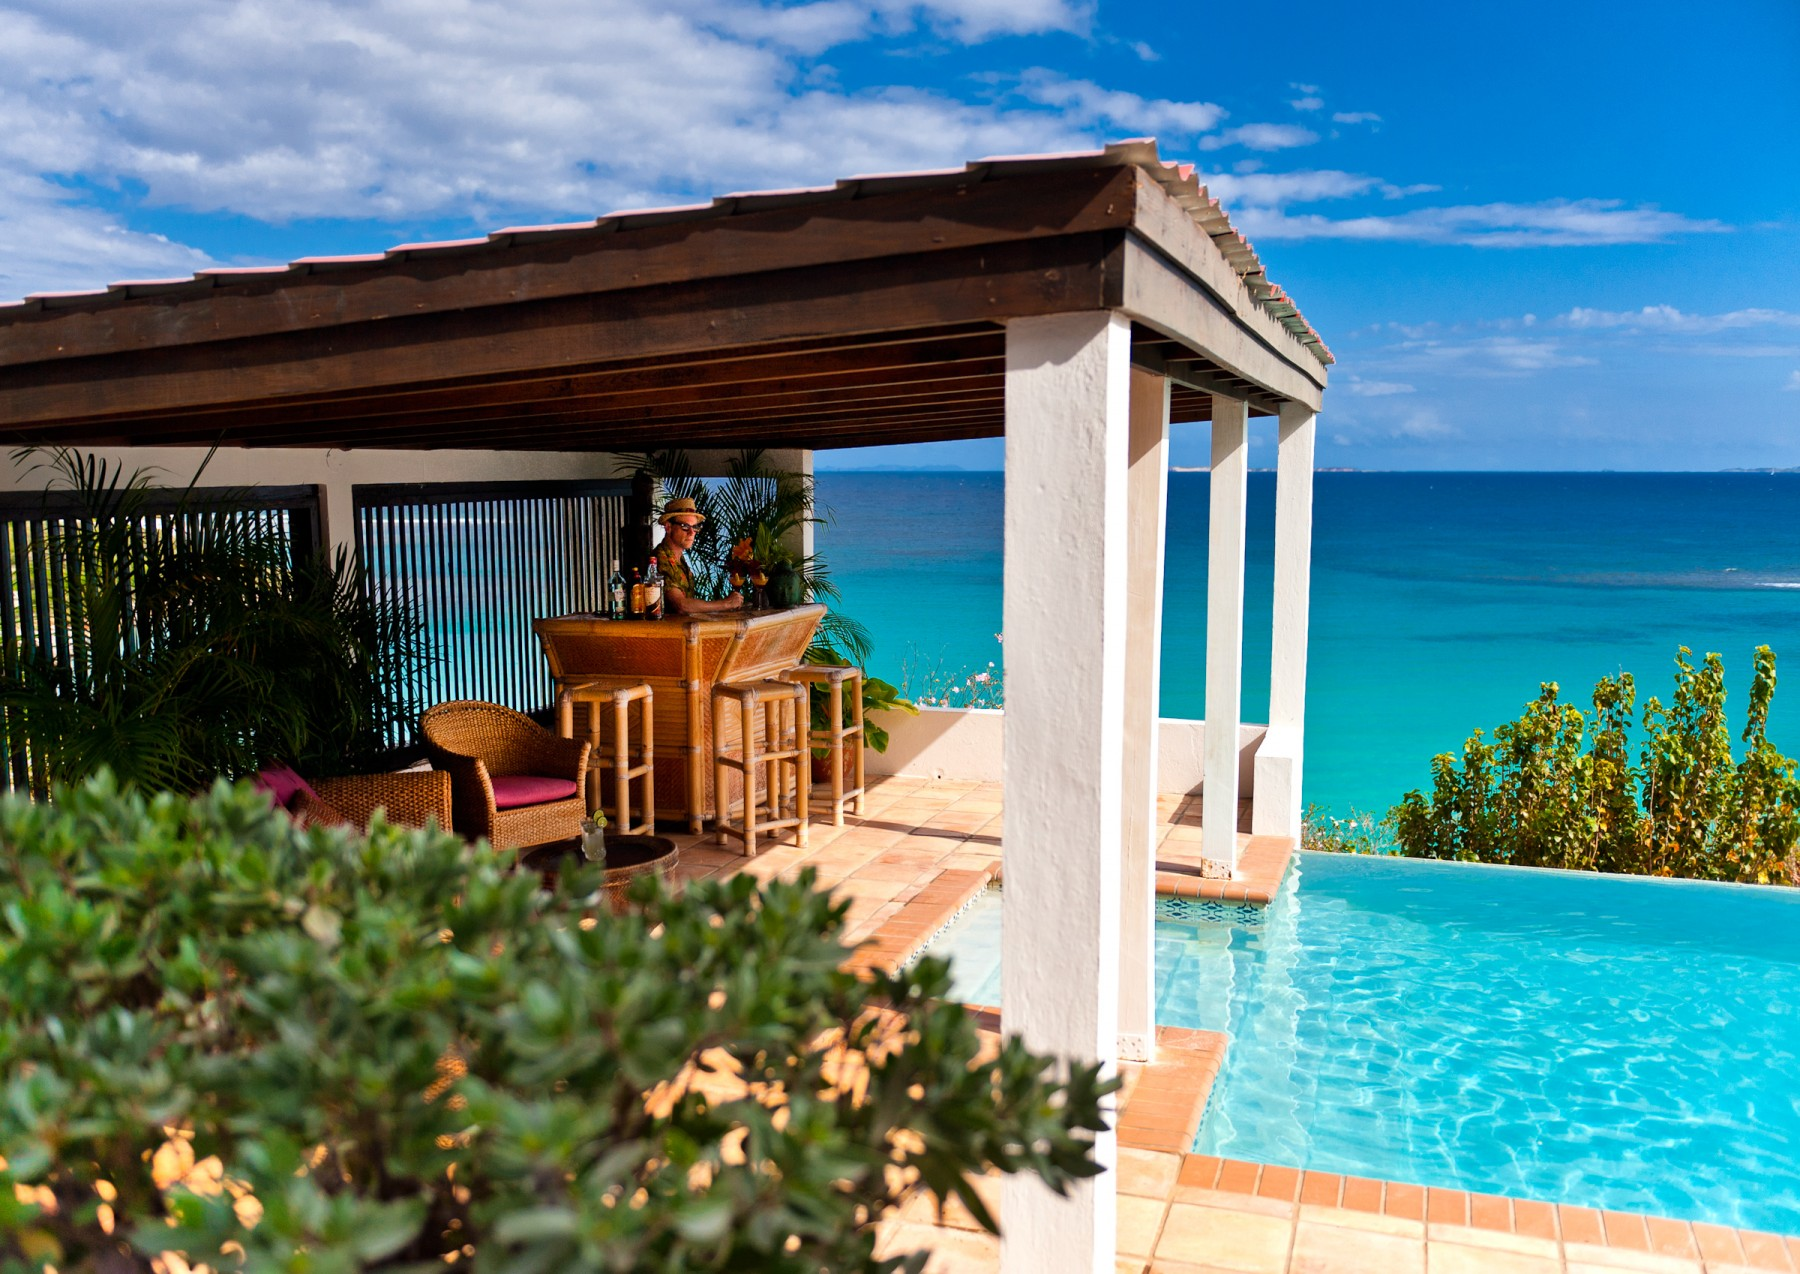 100 7 bedroom beach house rental property in for 9 bedroom beach house rental